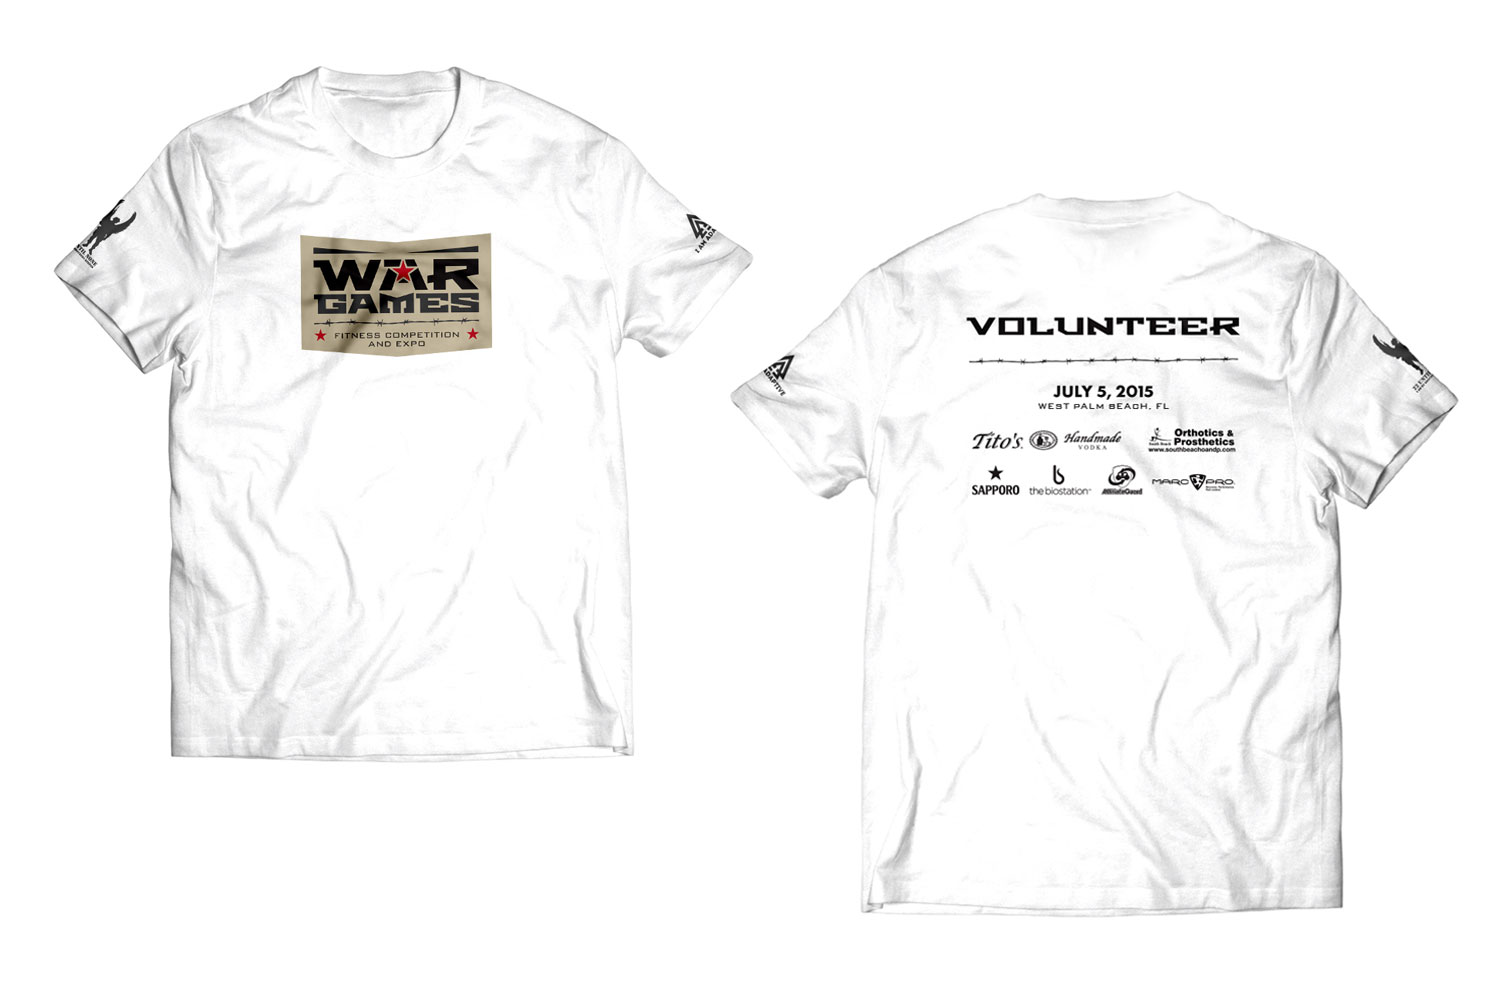 War Games Shirt - Volunteer